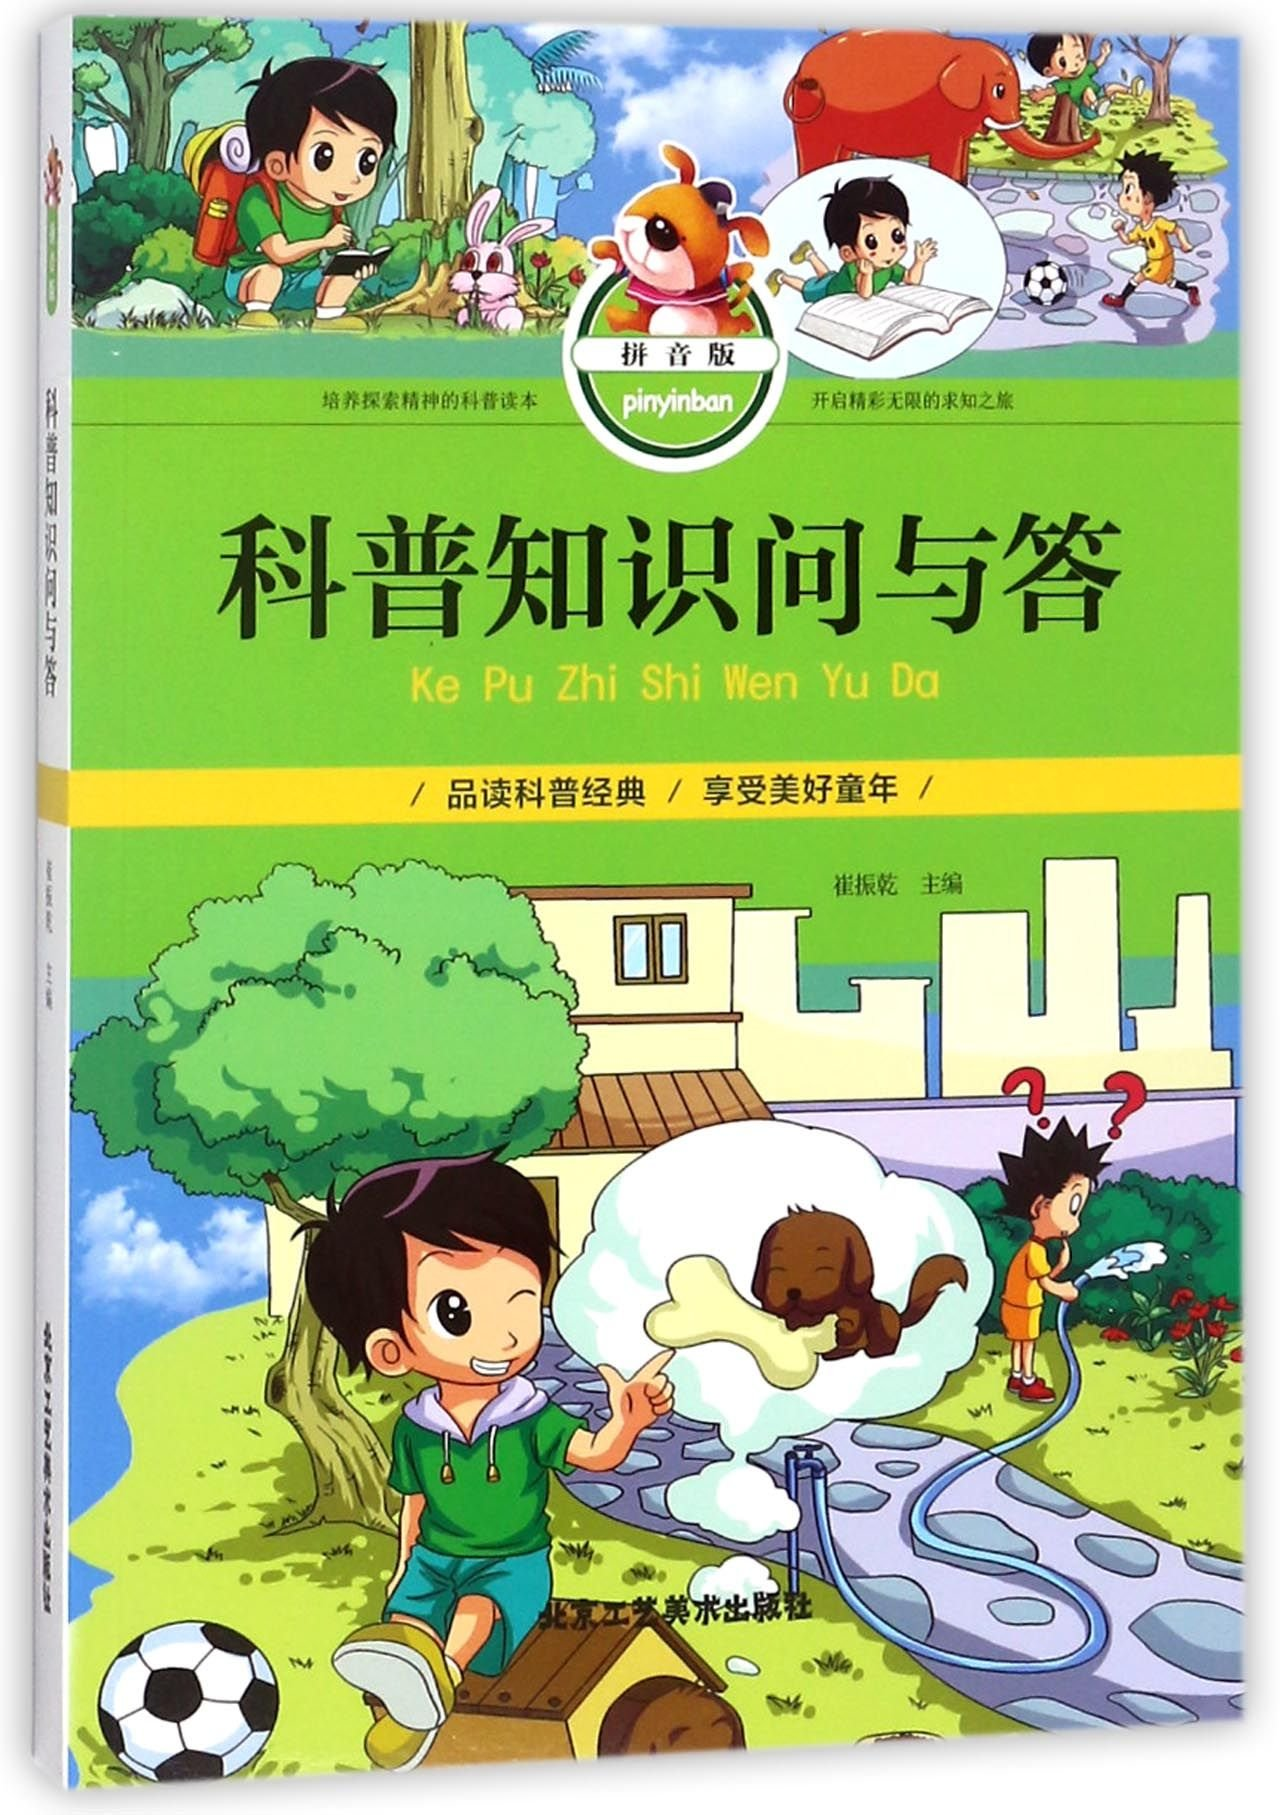 Questions & Answers of Popular Science Knowledge (Pinyin Edition) (Chinese Edition) ebook